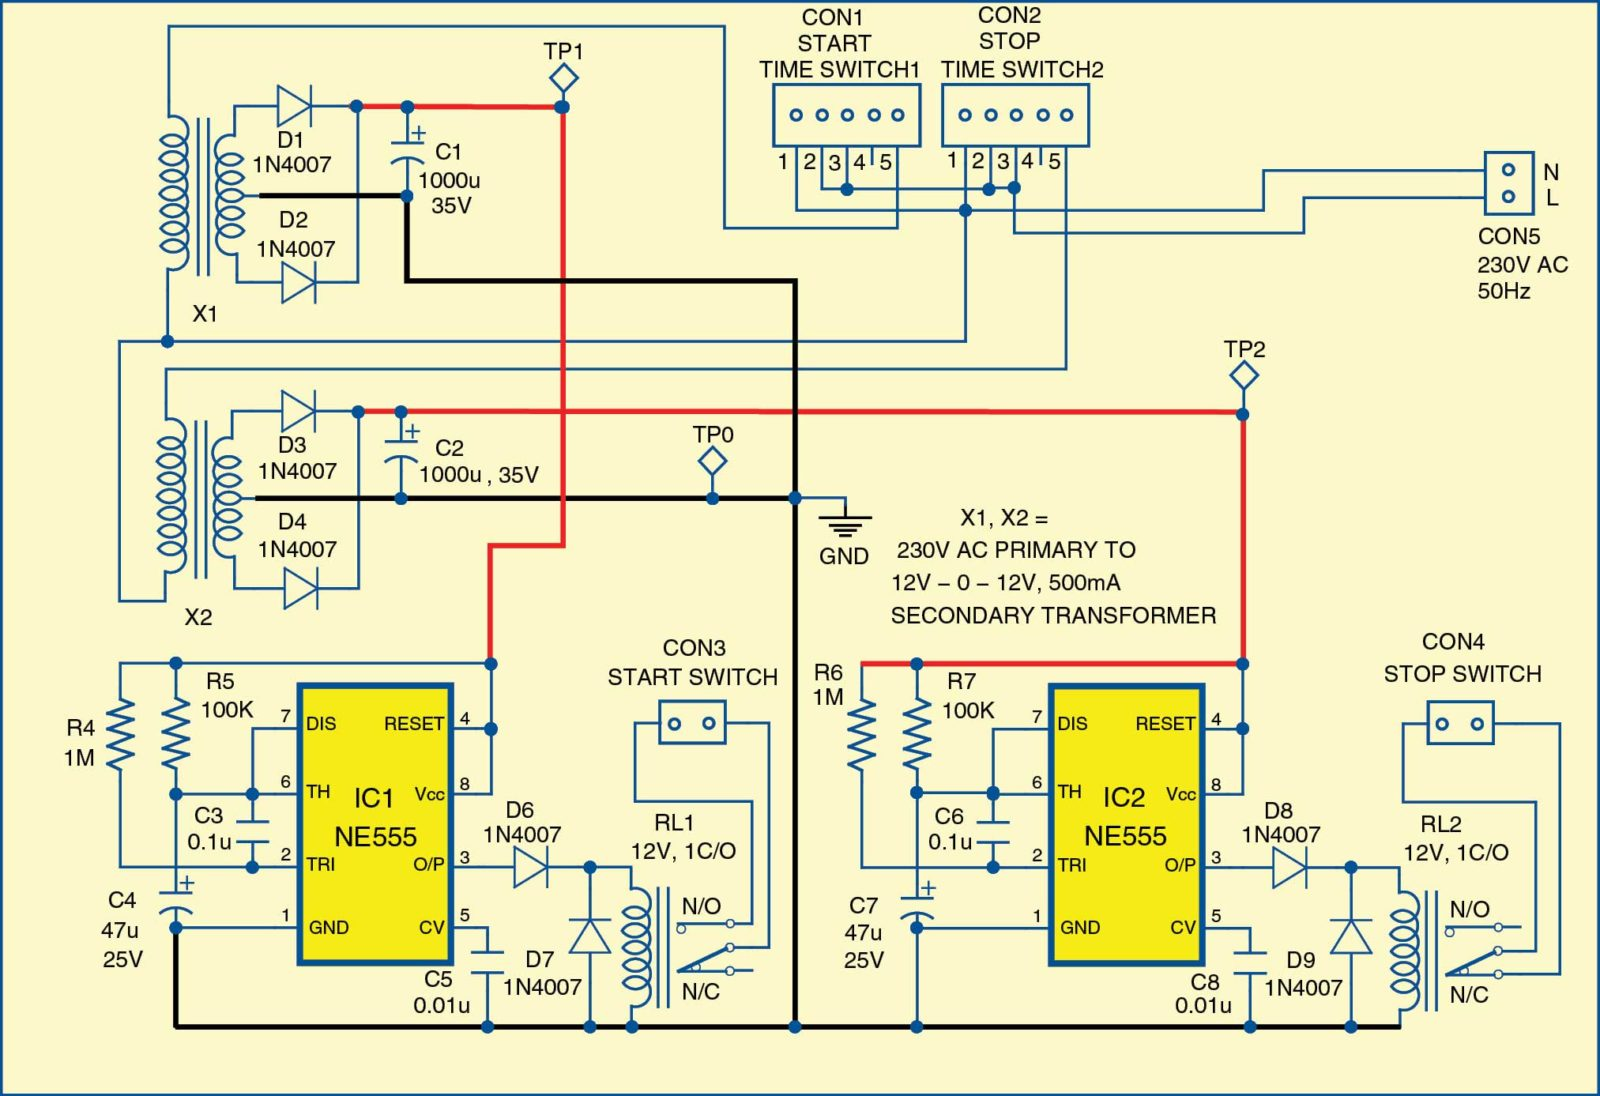 3 Sd Motor Wiring Diagram On 3. Wiring Diagram Schematics  Sd Motor Wiring Diagram Phase on 3 phase single line diagram, three-phase transformer banks diagrams, basic electrical schematic diagrams, 3 phase plug, 3 phase to single phase wiring diagram, 3 phase motor testing, baldor ac motor diagrams, 3 phase subpanel, 3 phase motor troubleshooting guide, 3 phase motor repair, 3 phase motor schematic, 3 phase motor starter, 3 phase outlet wiring diagram, 3 phase motor windings, 3 phase motor speed controller, 3 phase water heater wiring diagram, 3 phase electrical meters, 3 phase squirrel cage induction motor, 3 phase to 1 phase wiring diagram, 3 phase stepper,